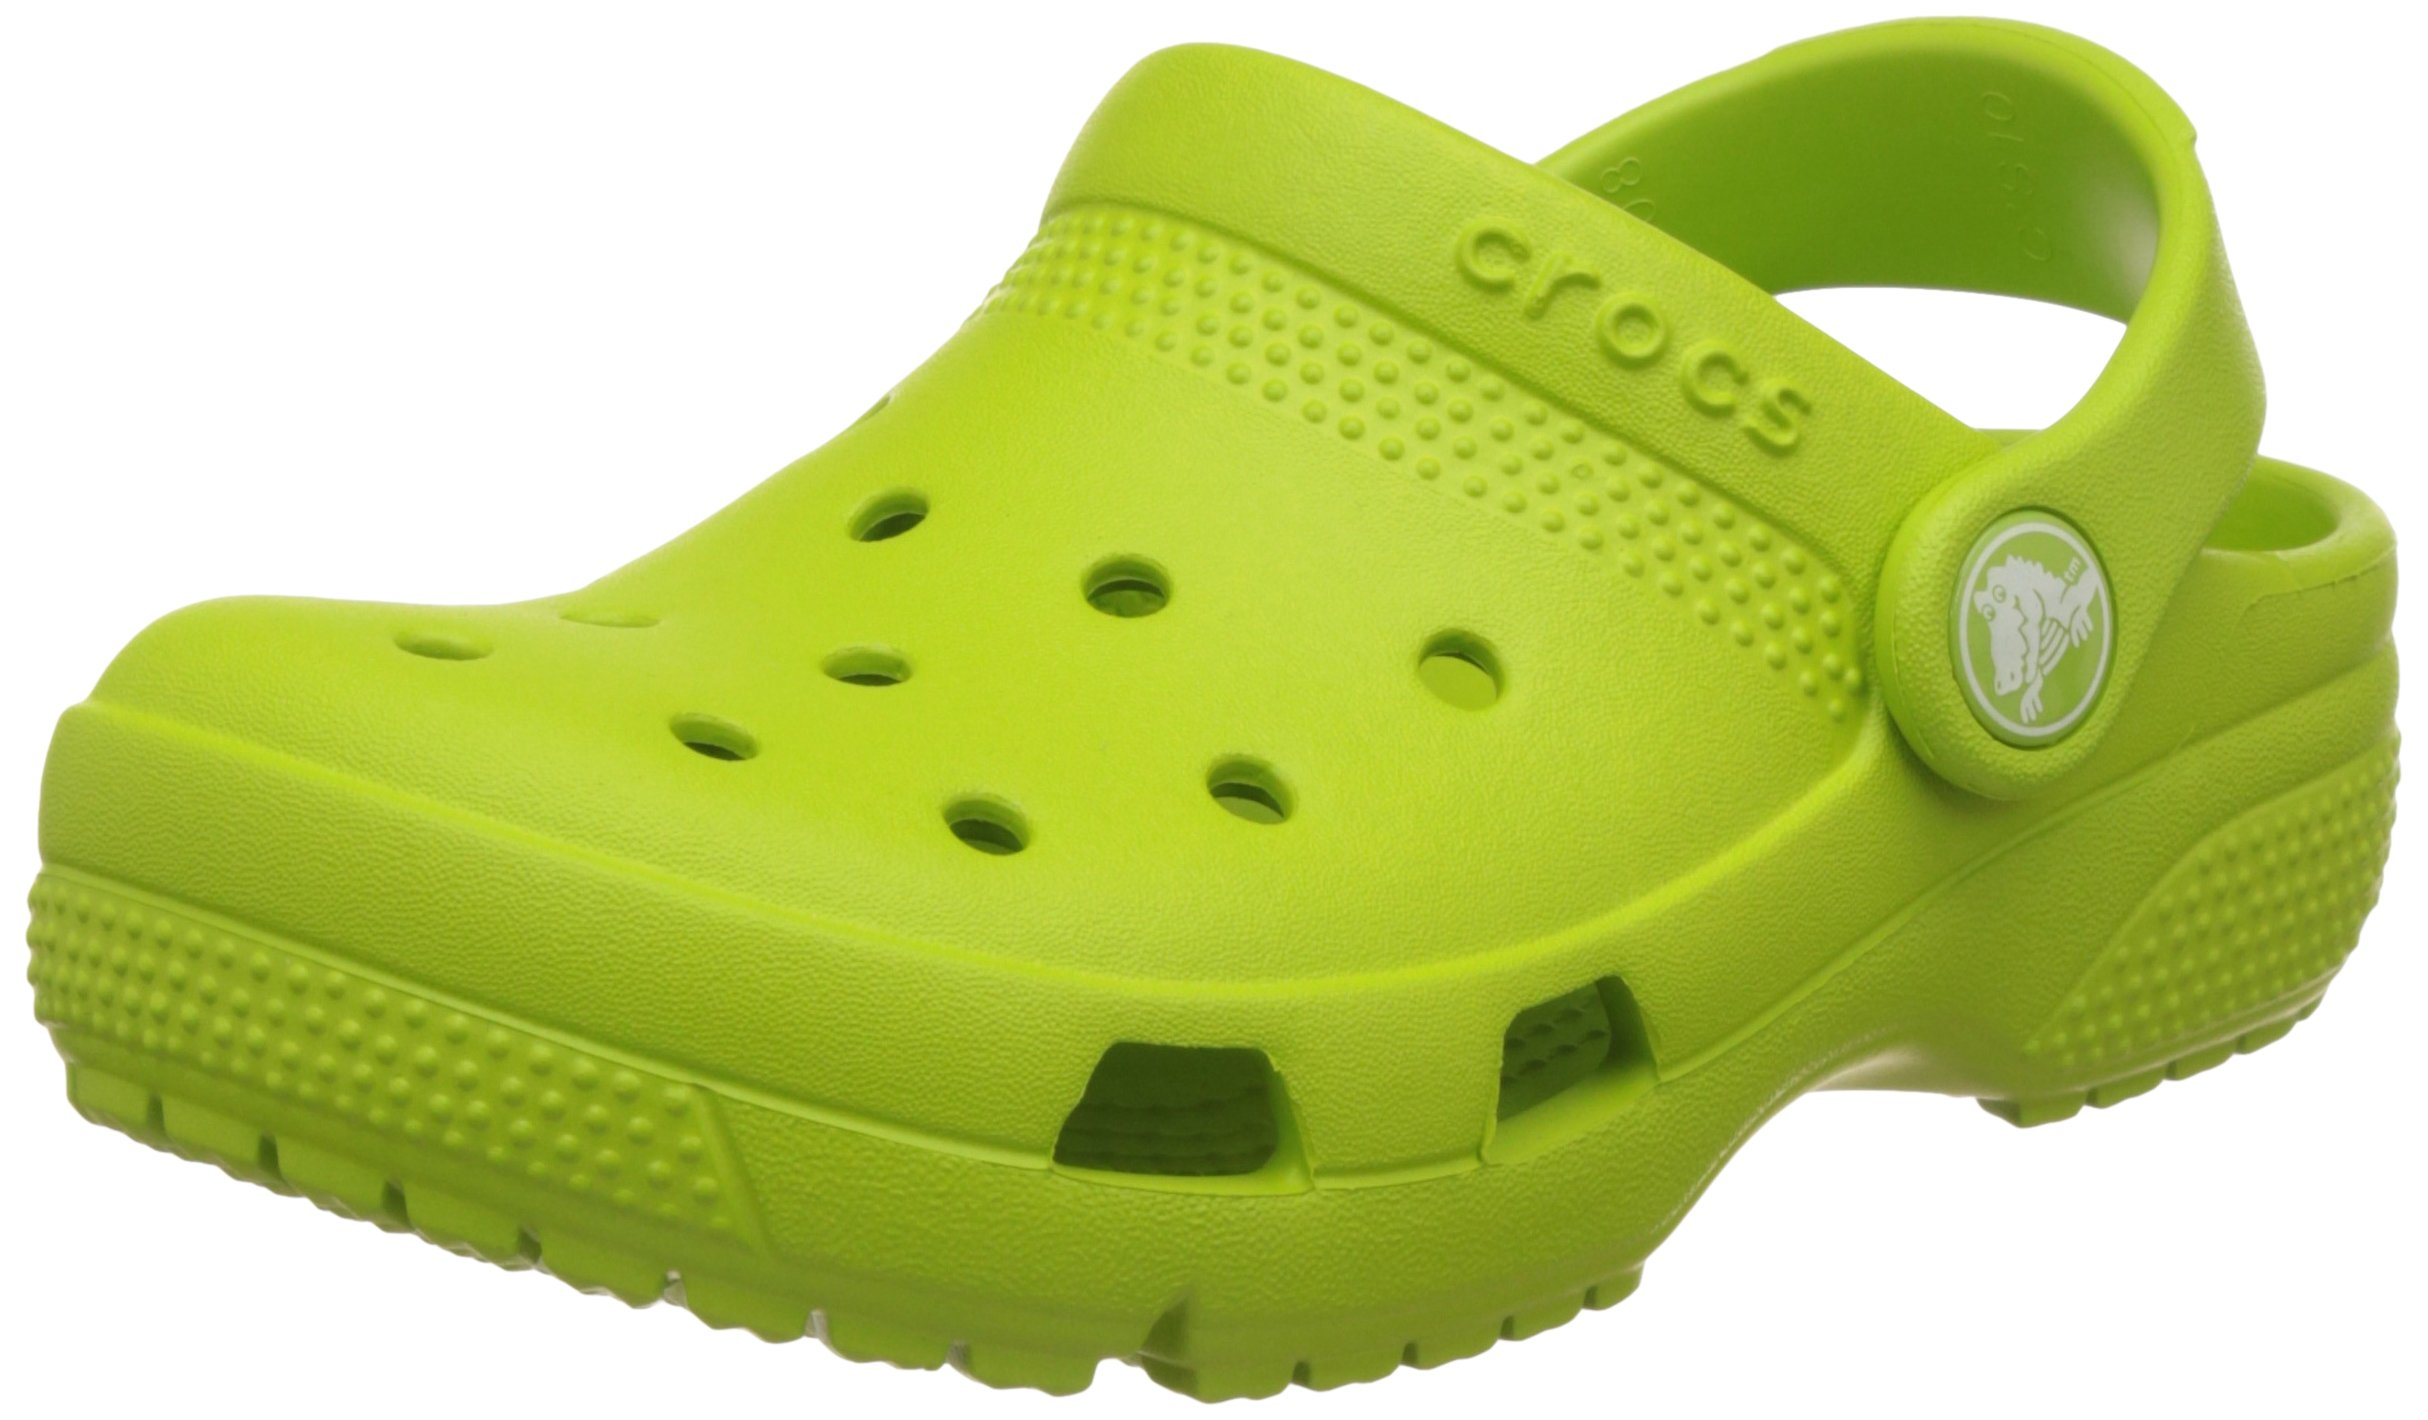 Crocs Kids Coast Clogs, Size: 7 M US Toddler, Color Volt Green